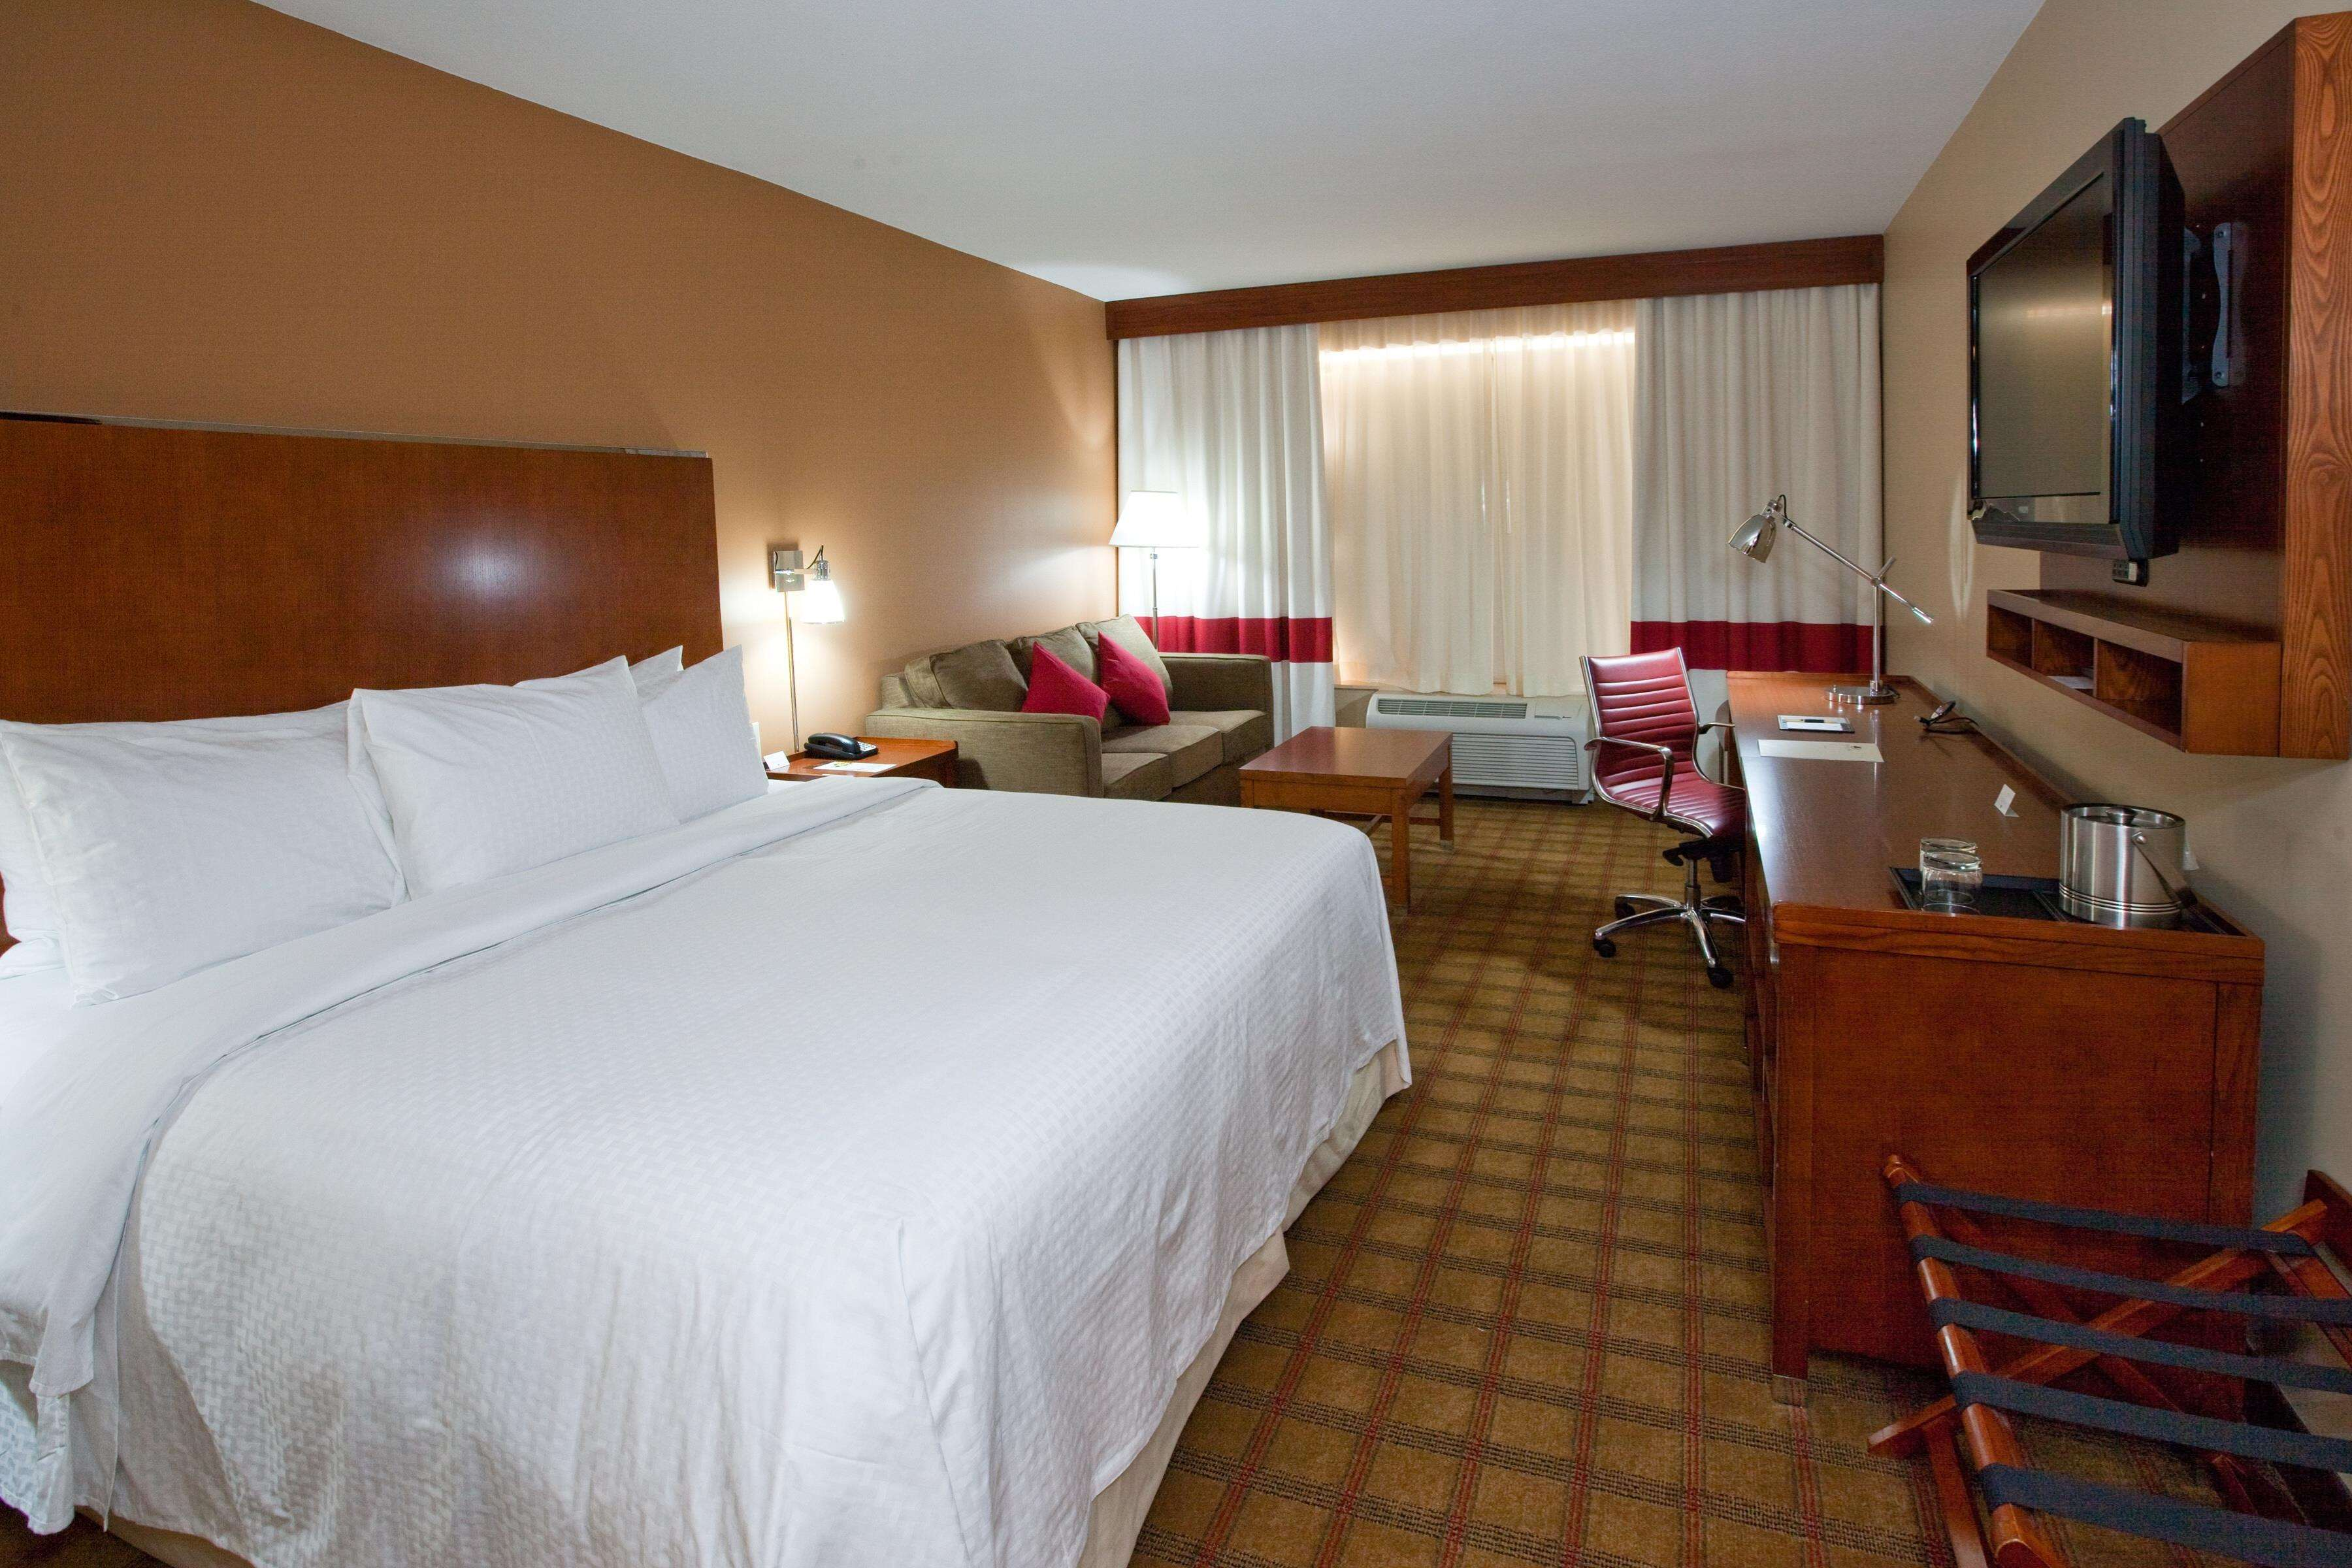 DoubleTree by Hilton Hotel Raleigh - Cary image 10